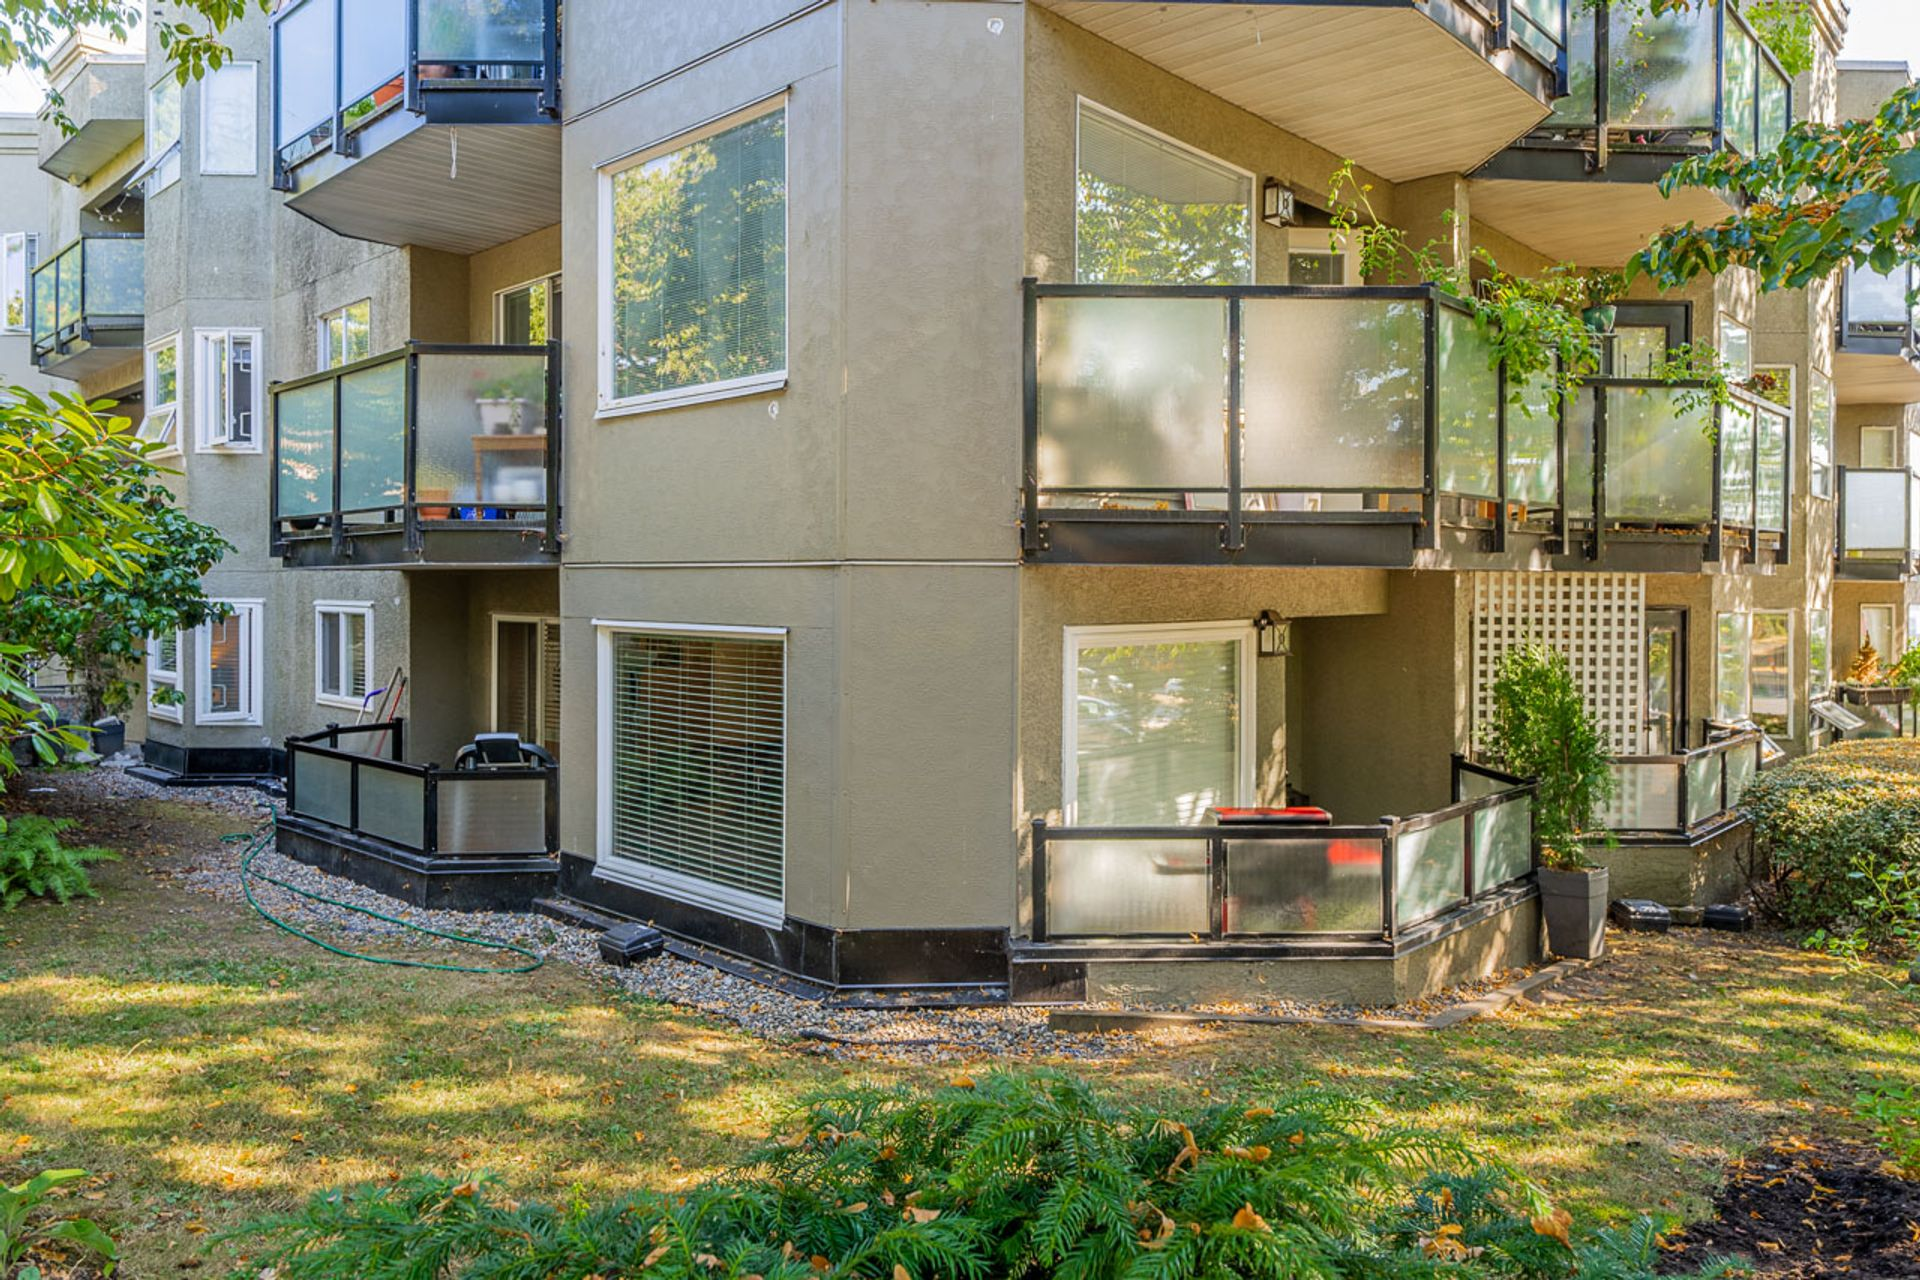 unit-101-175-west-4th-street-north-vancouver-2 at 101 - 175 W 4th Street, Lower Lonsdale, North Vancouver